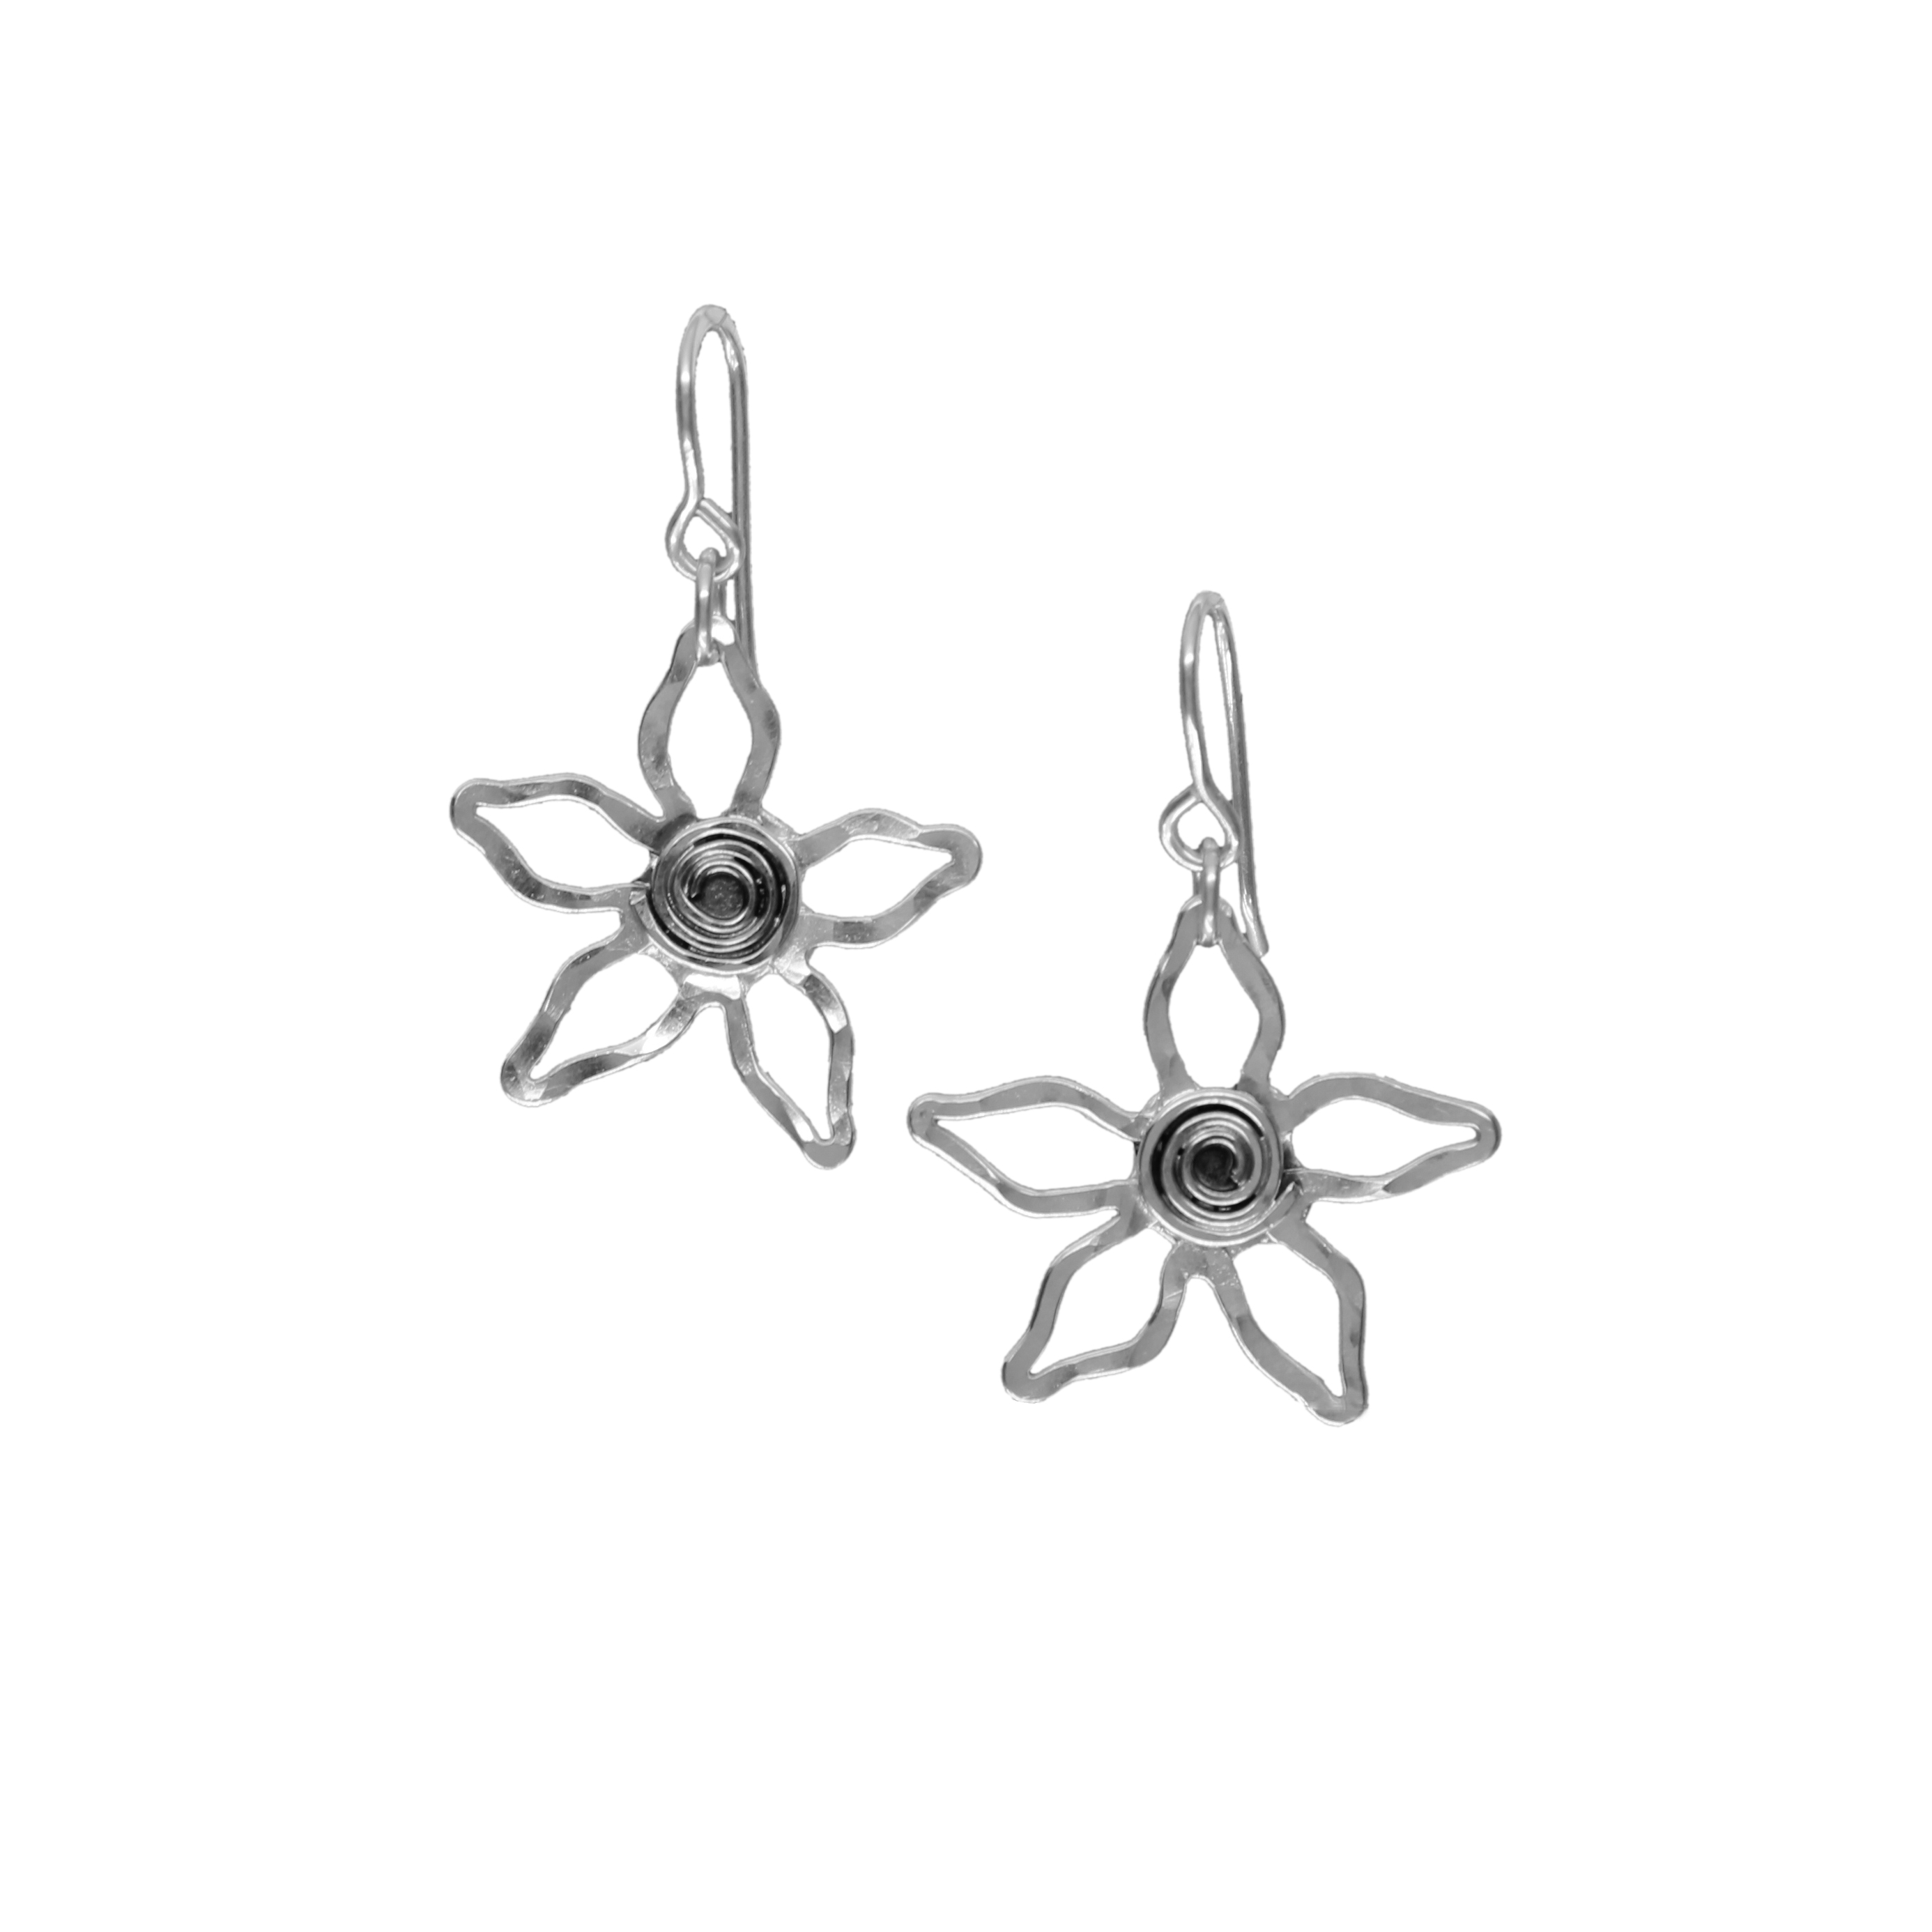 Spiral flower earrings